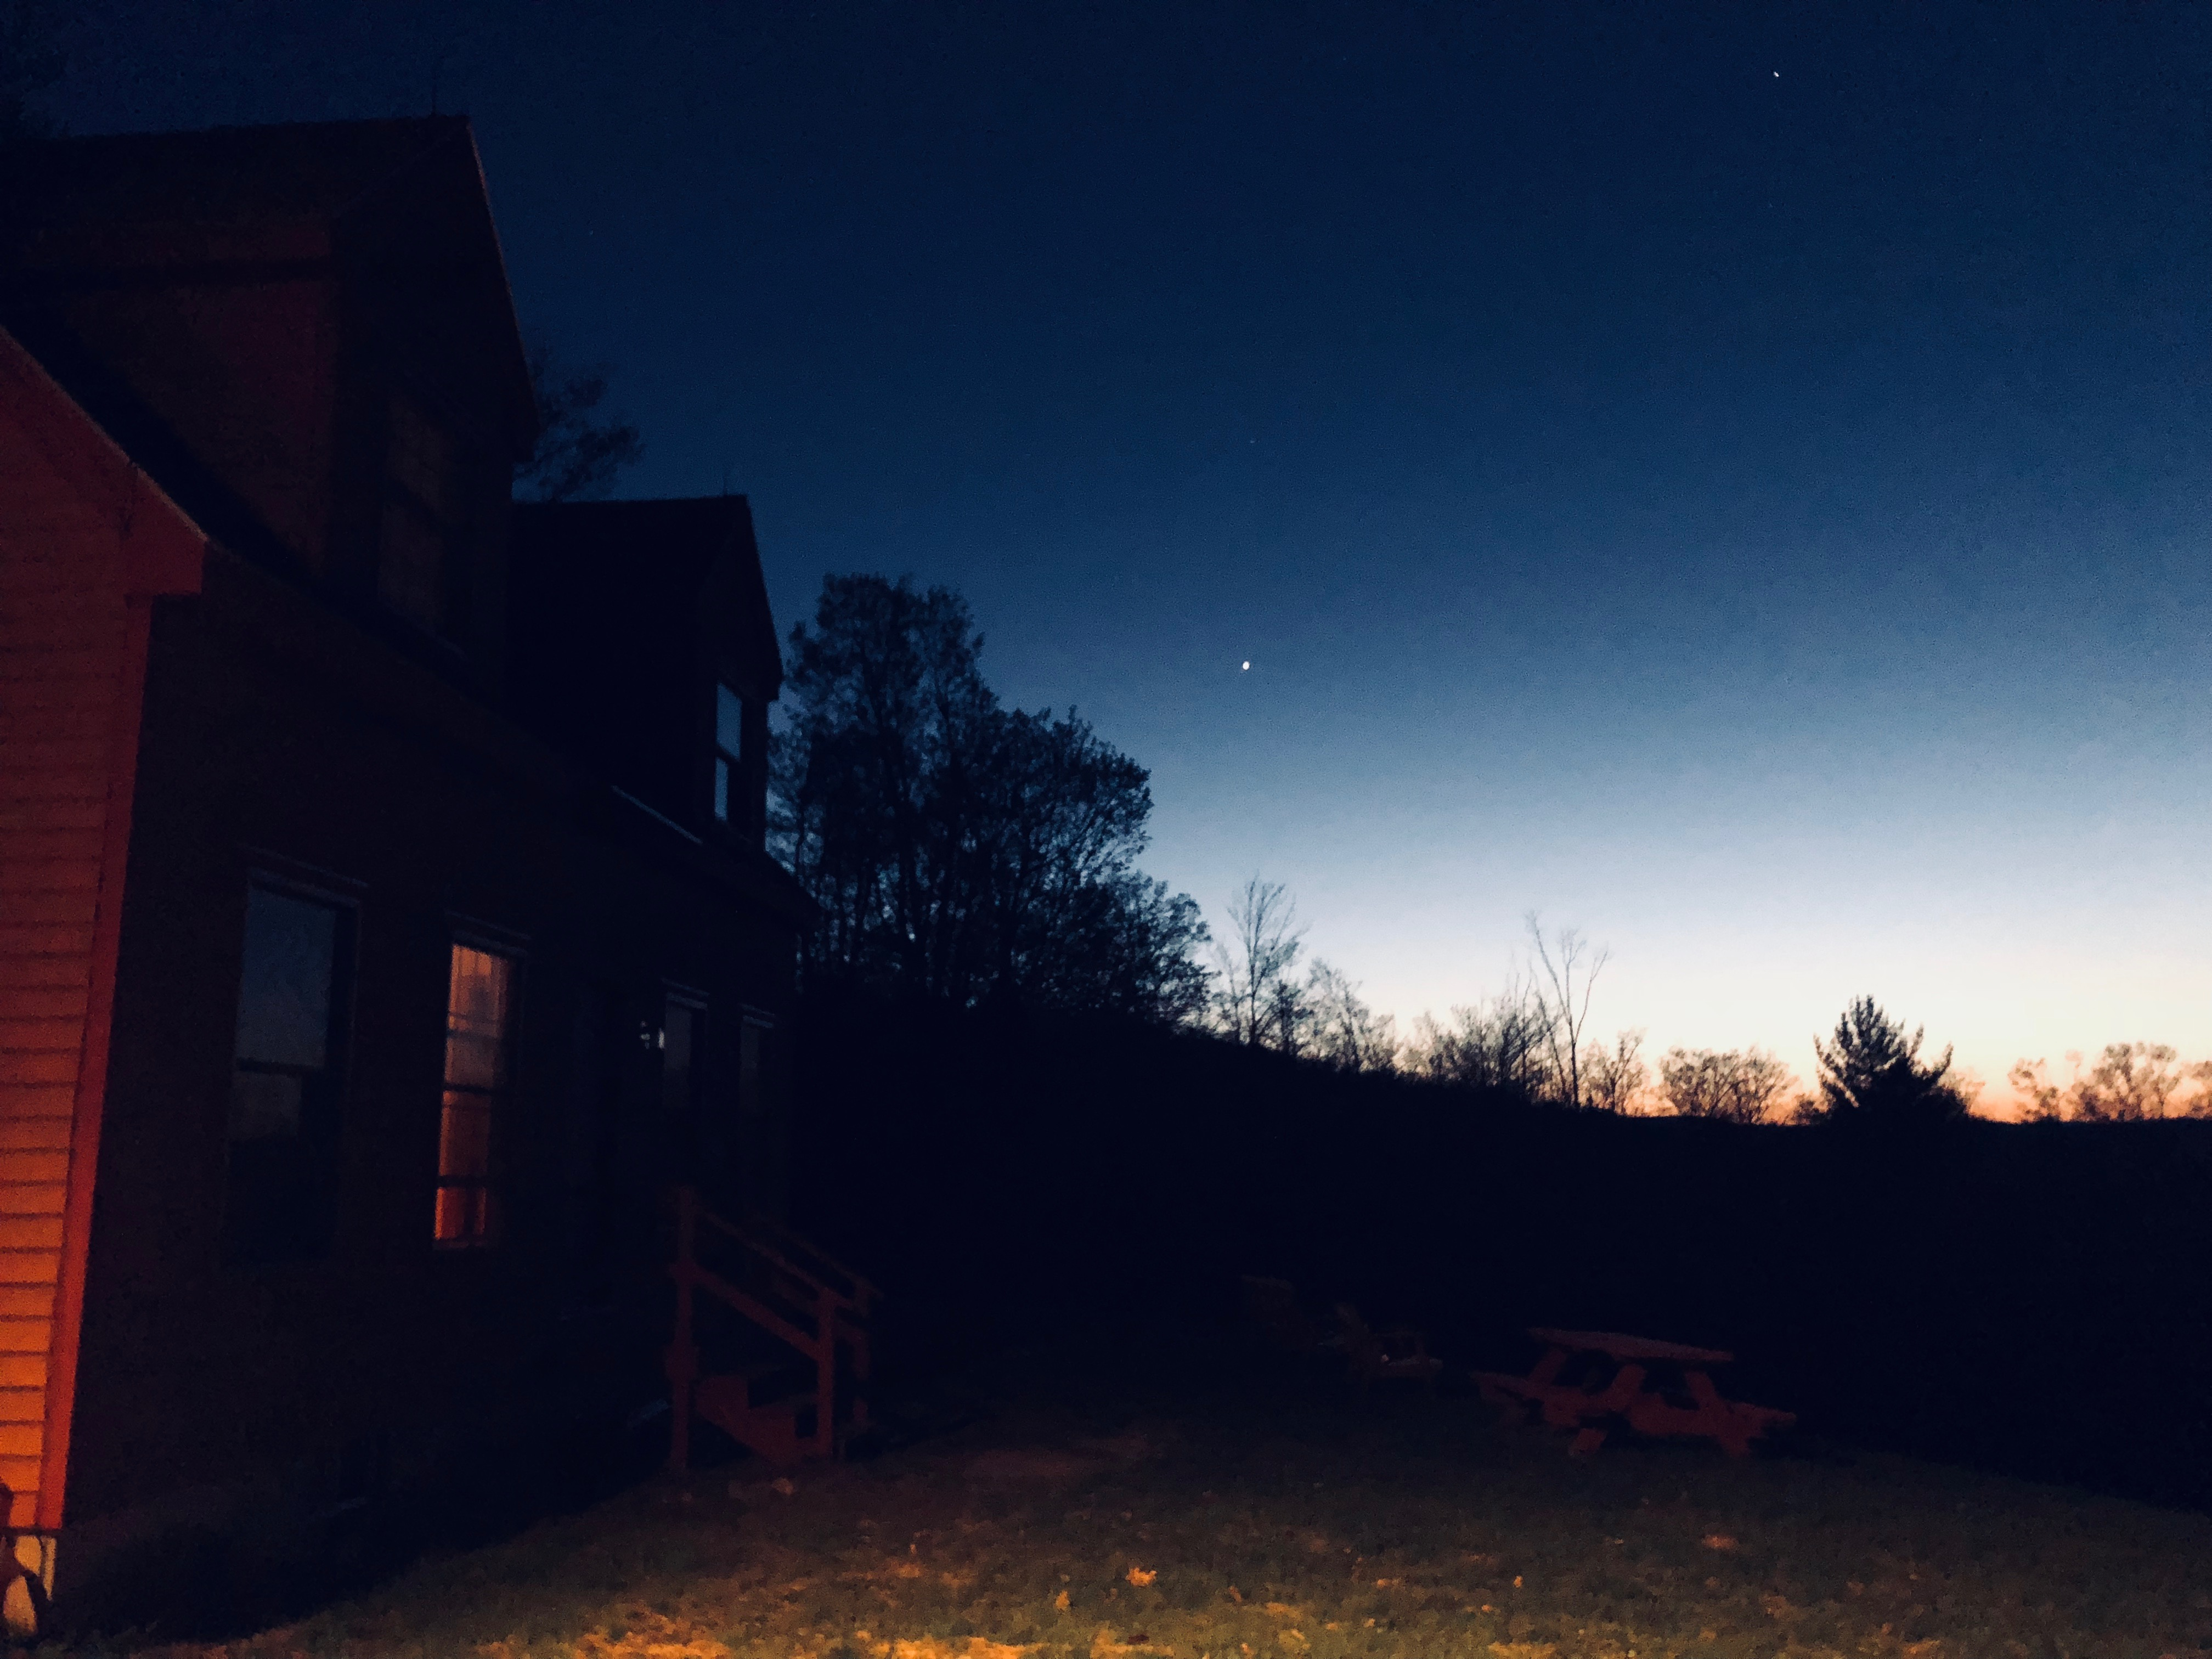 The night sky in Guilford, VT